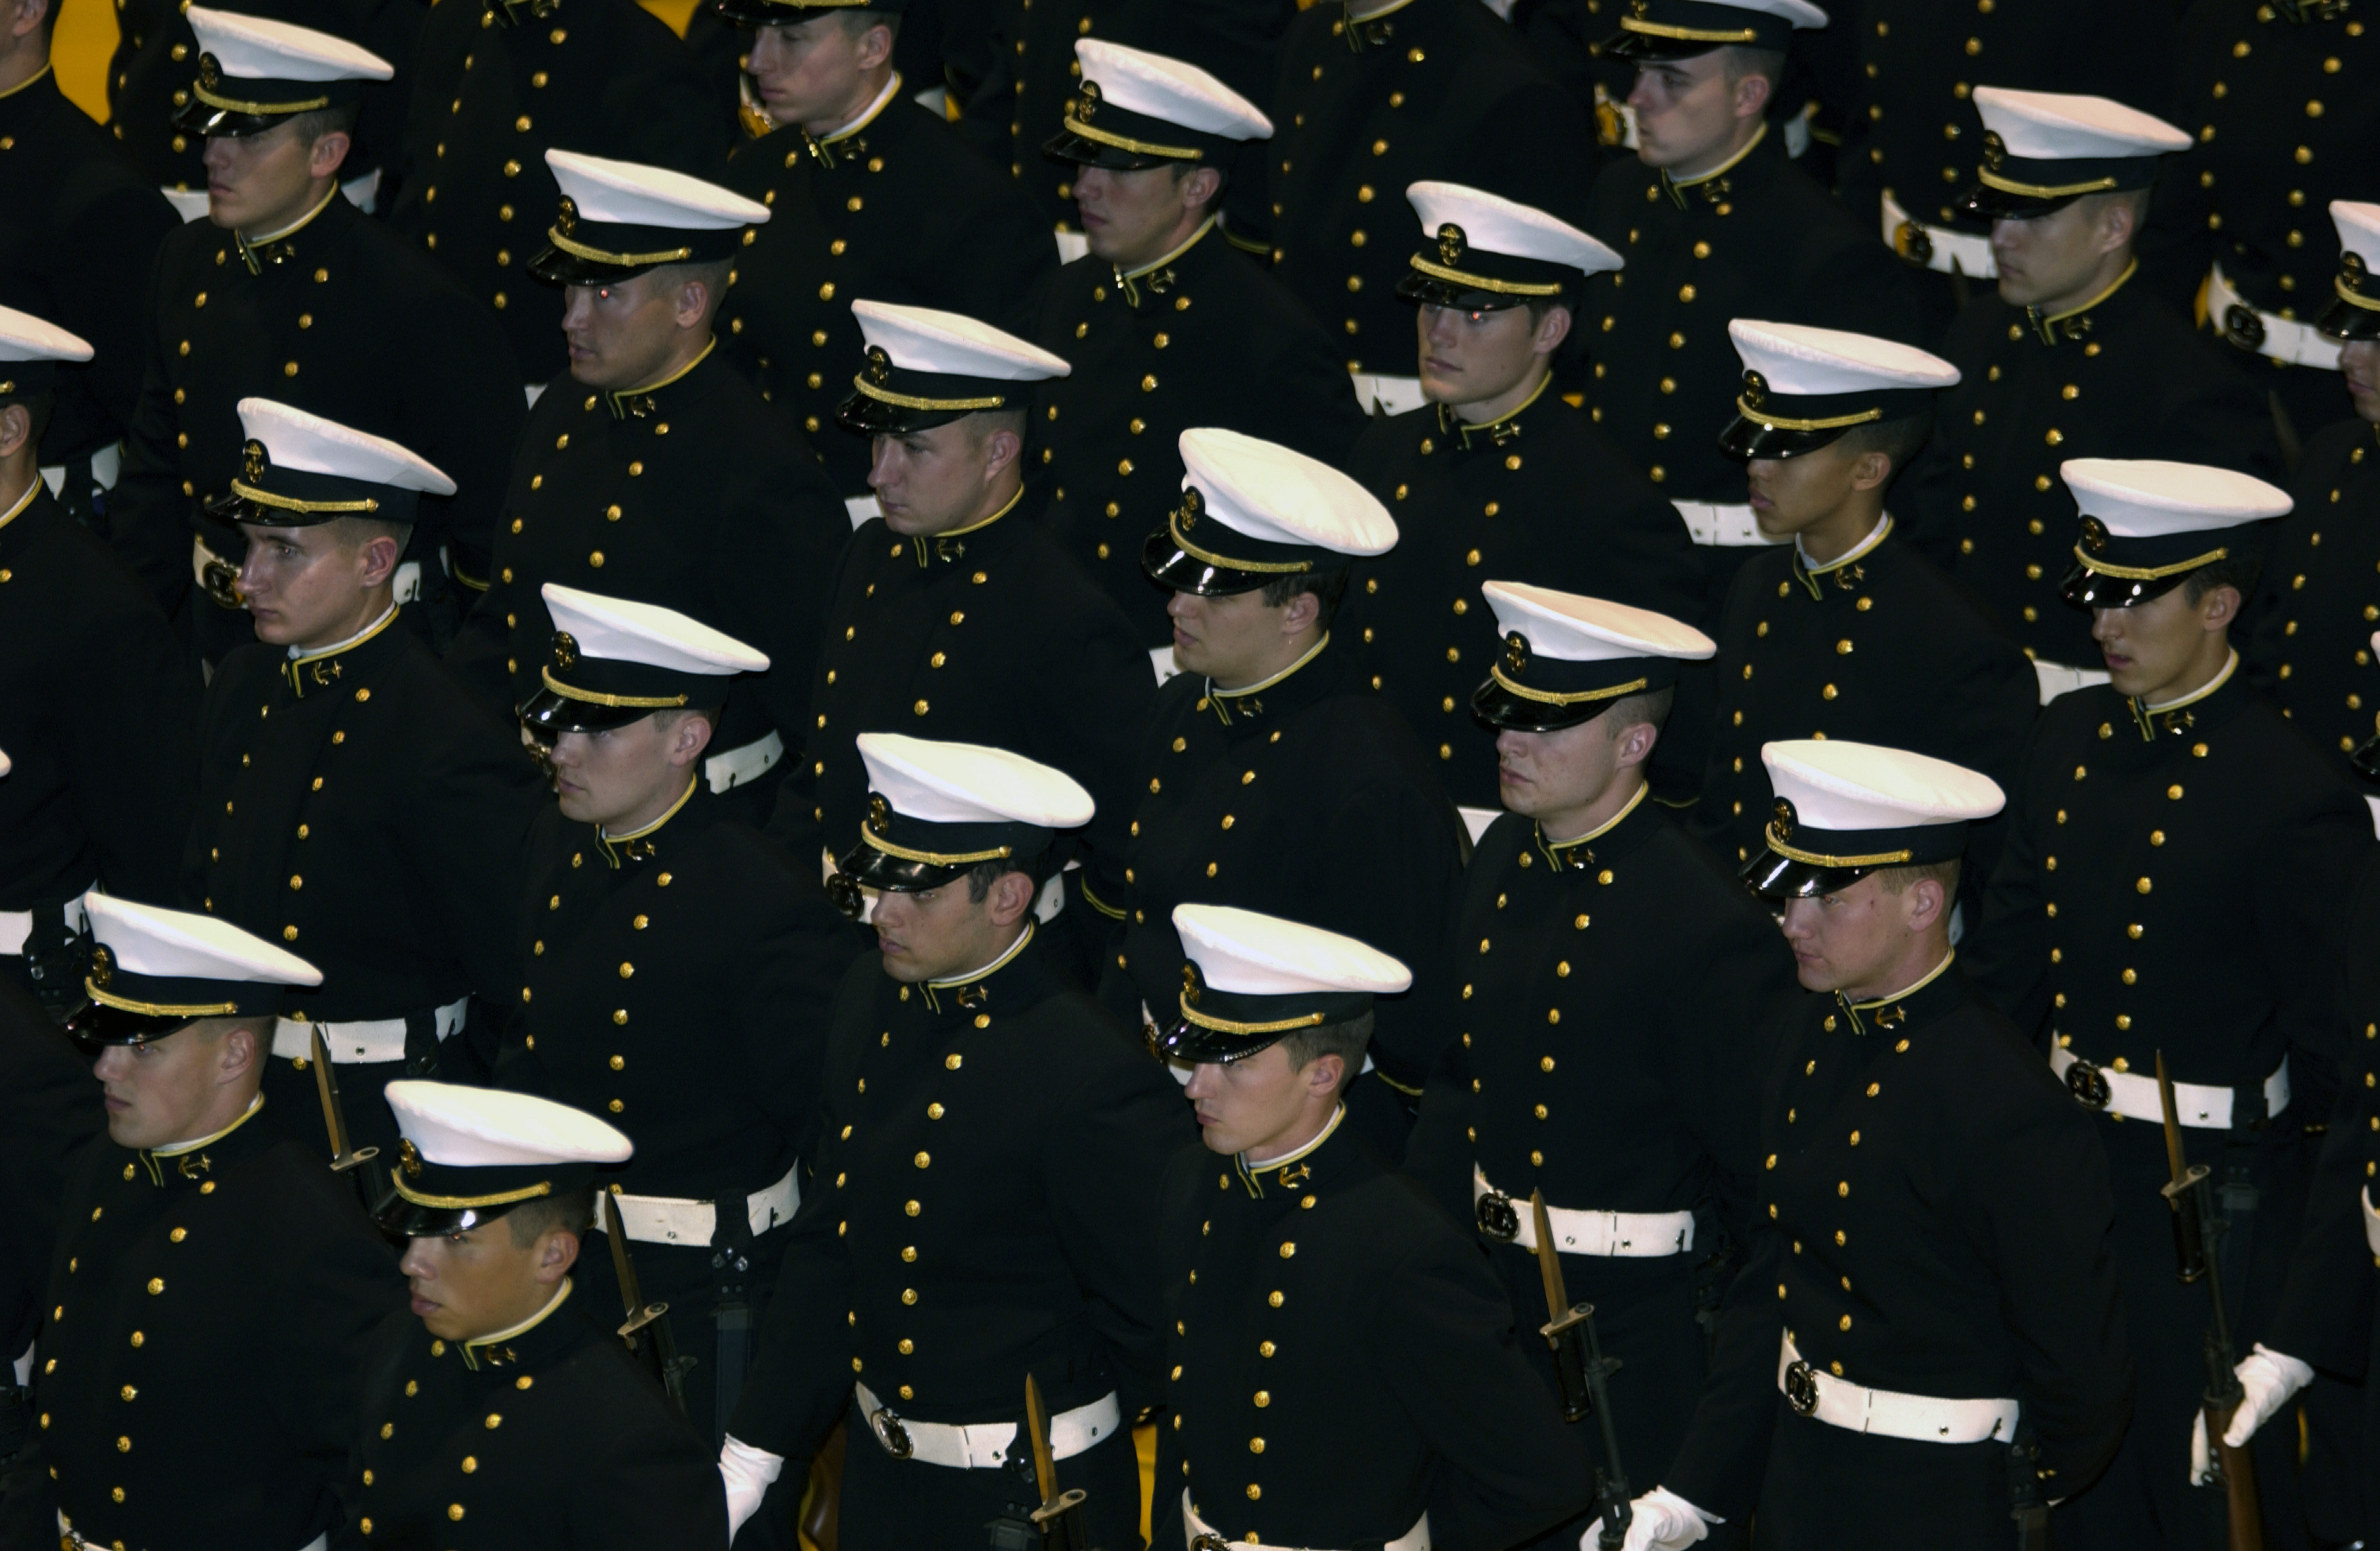 File service dress blues jpg wikimedia commons - File Us Navy 031121 N 9693m 001 U S Naval Academy Midshipmen Stand